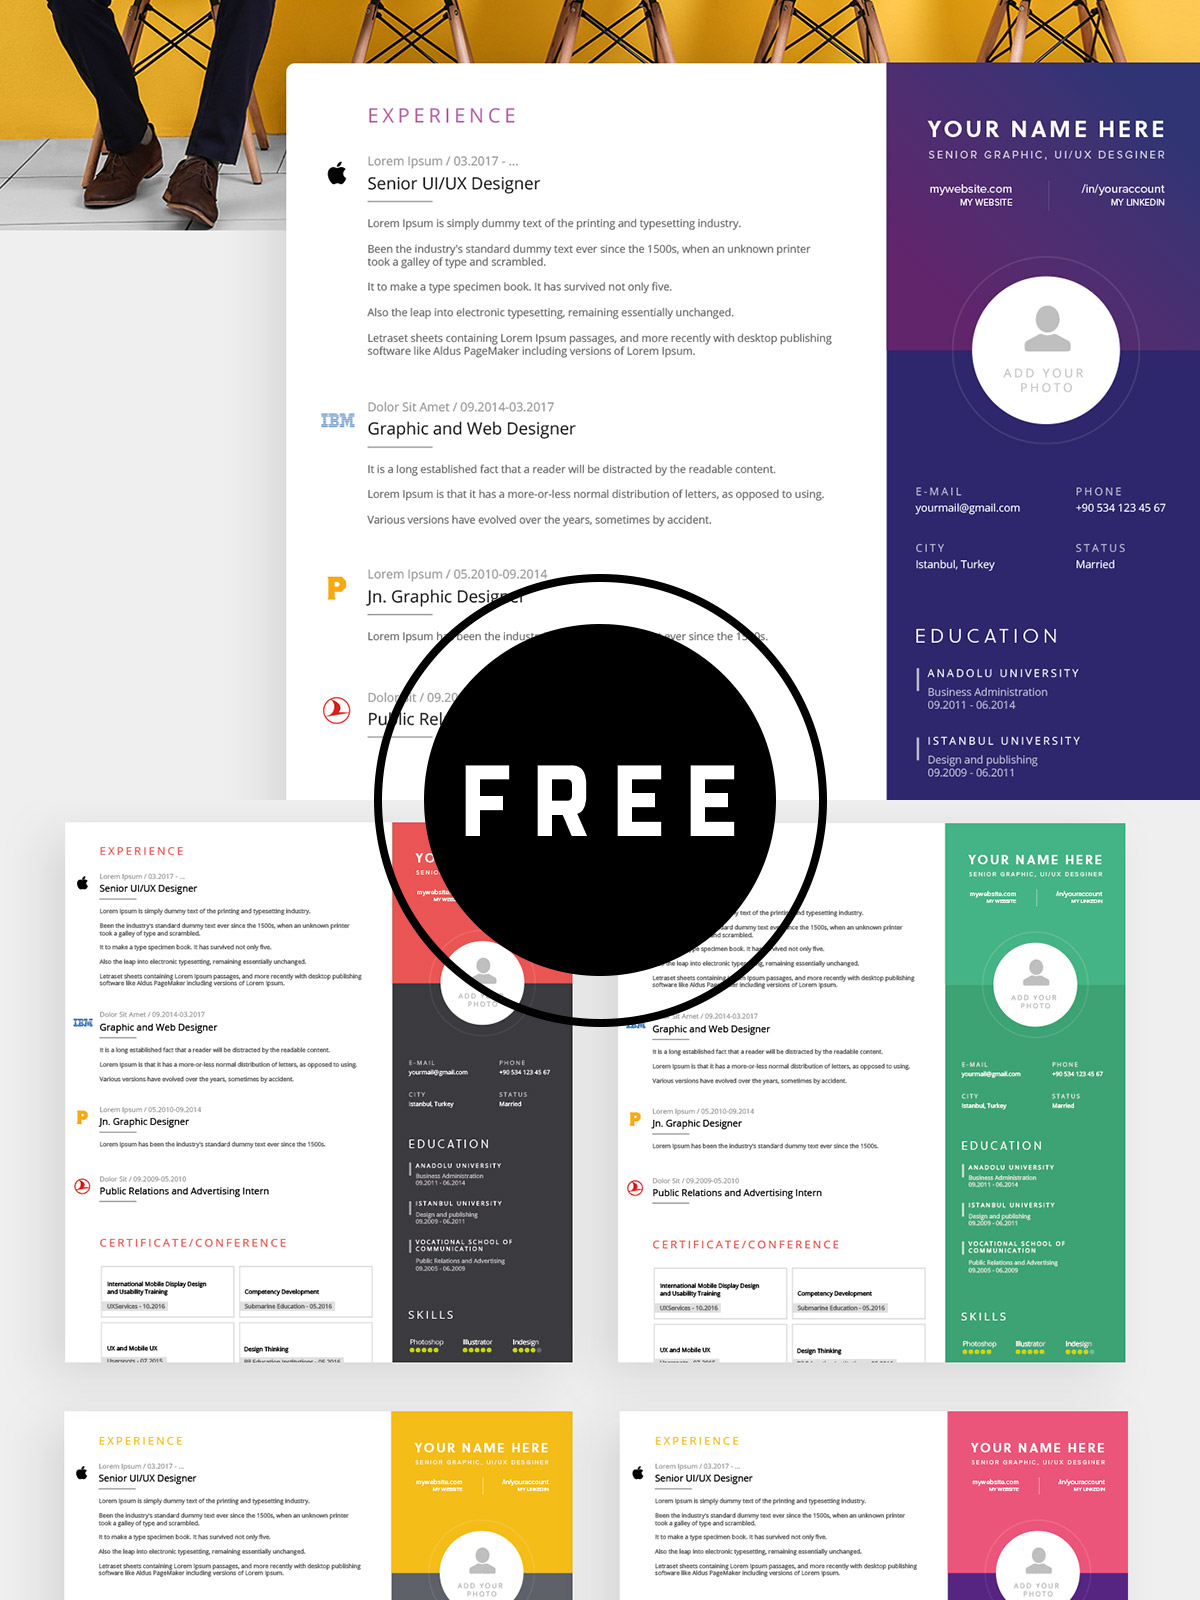 awesome free resume templates for creativetacos fun example of childcare paramedic job Resume Fun Resume Templates Free